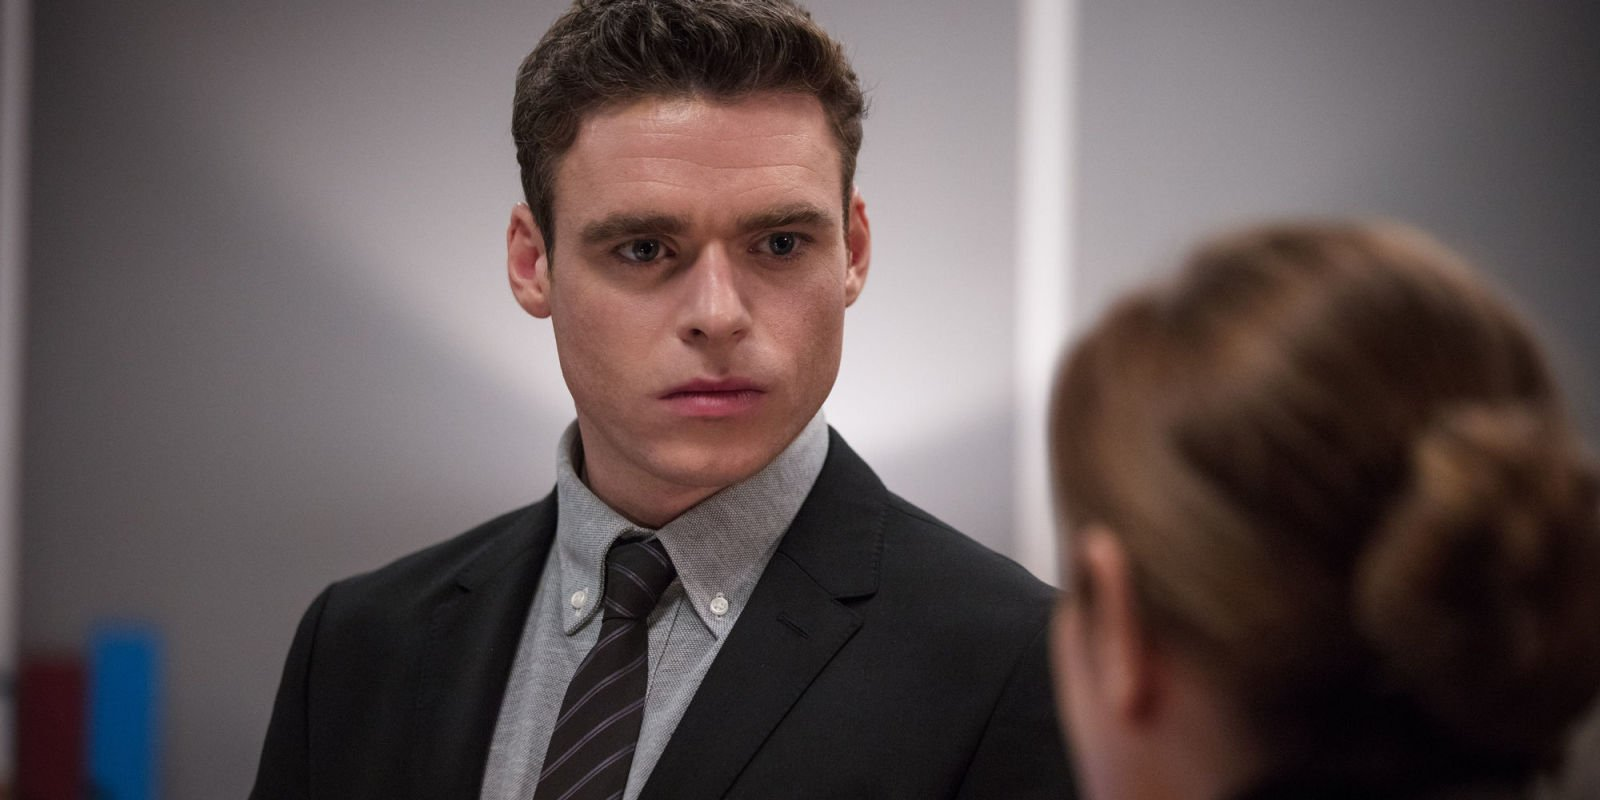 BBC's Bodyguard has a lot of inaccuracies real-life bodyguards have issues with